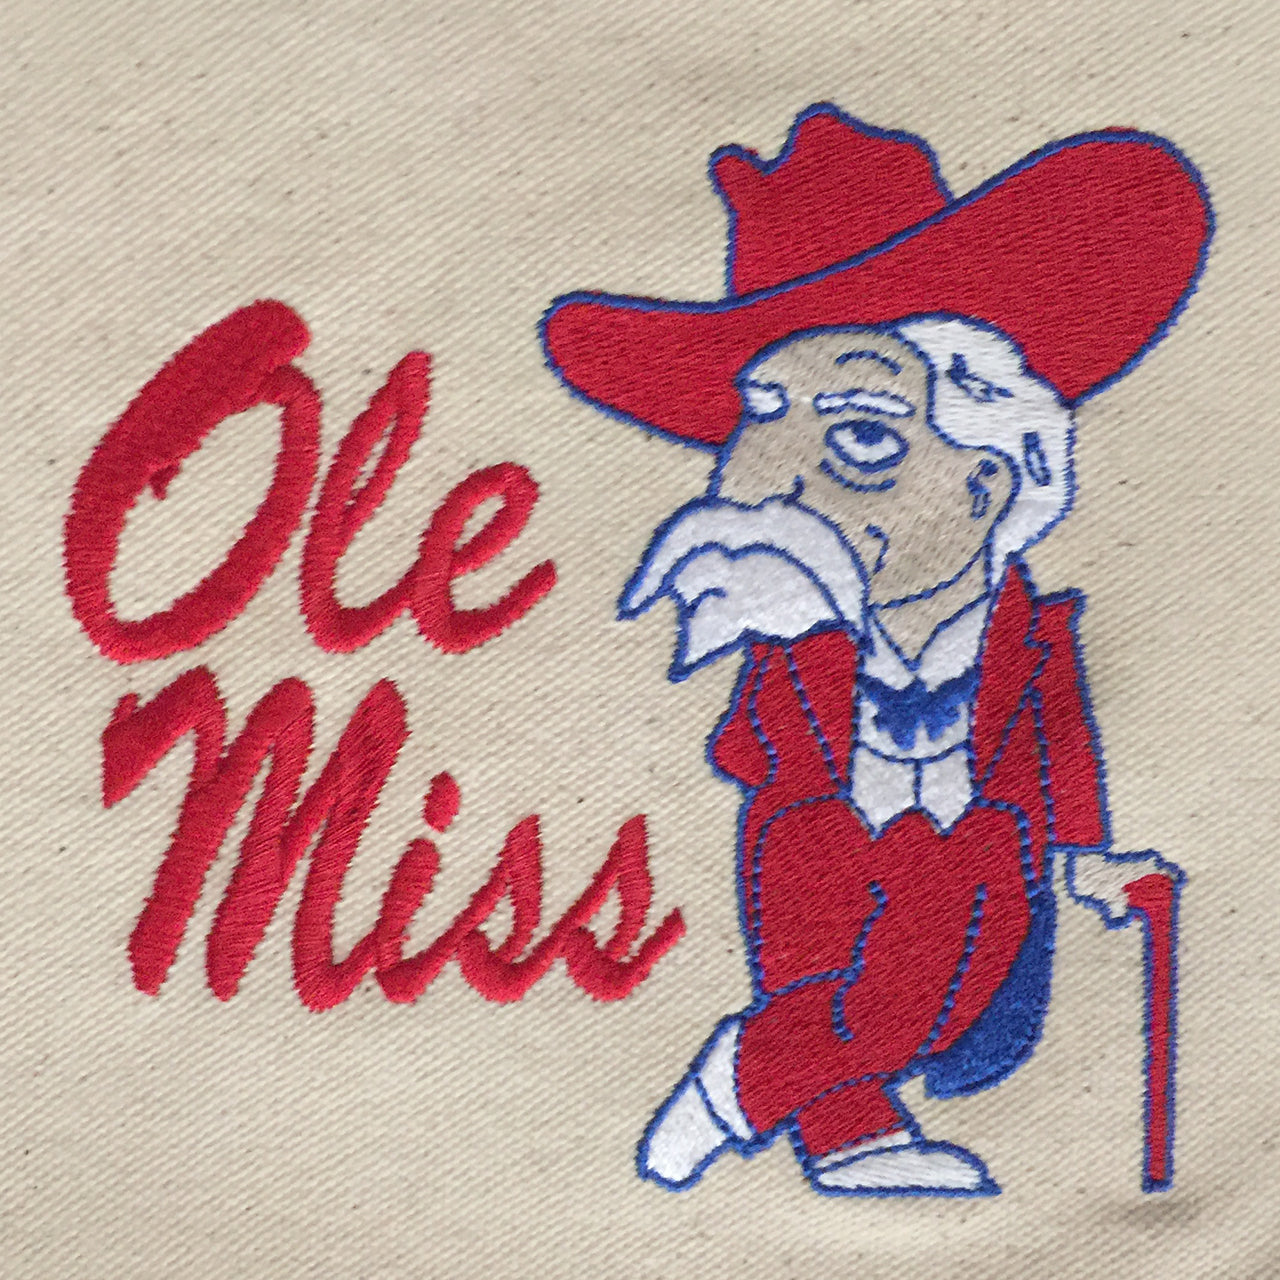 Ole Miss Rebel embroidered on  Tote bag with red handles